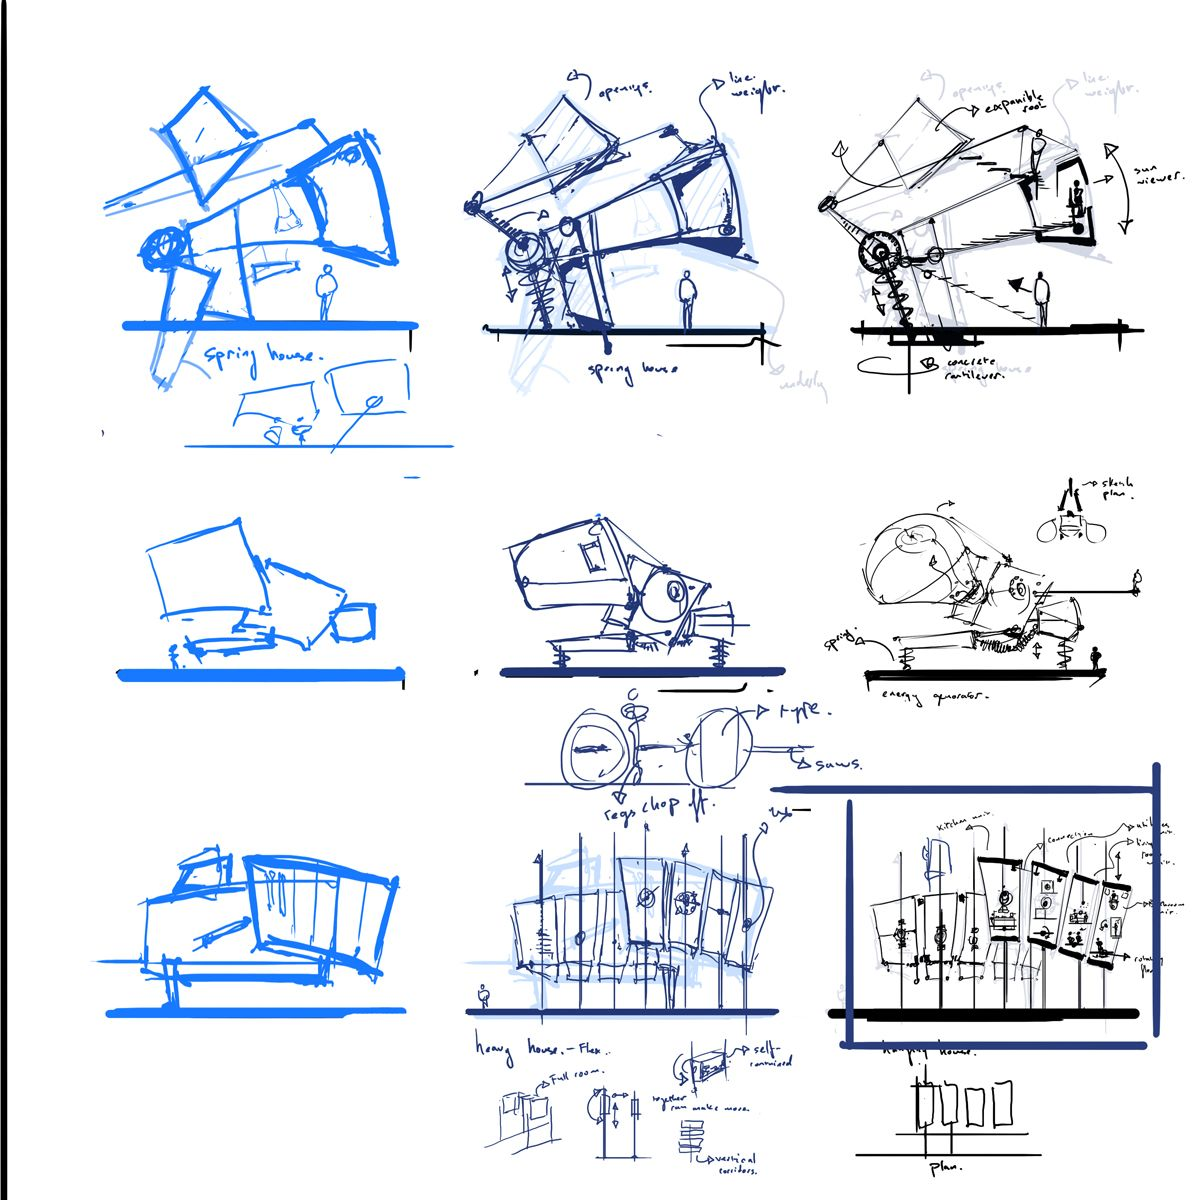 Home Design Ideas For Seniors: Buildup Of Idea Through Orthographic To Perspective